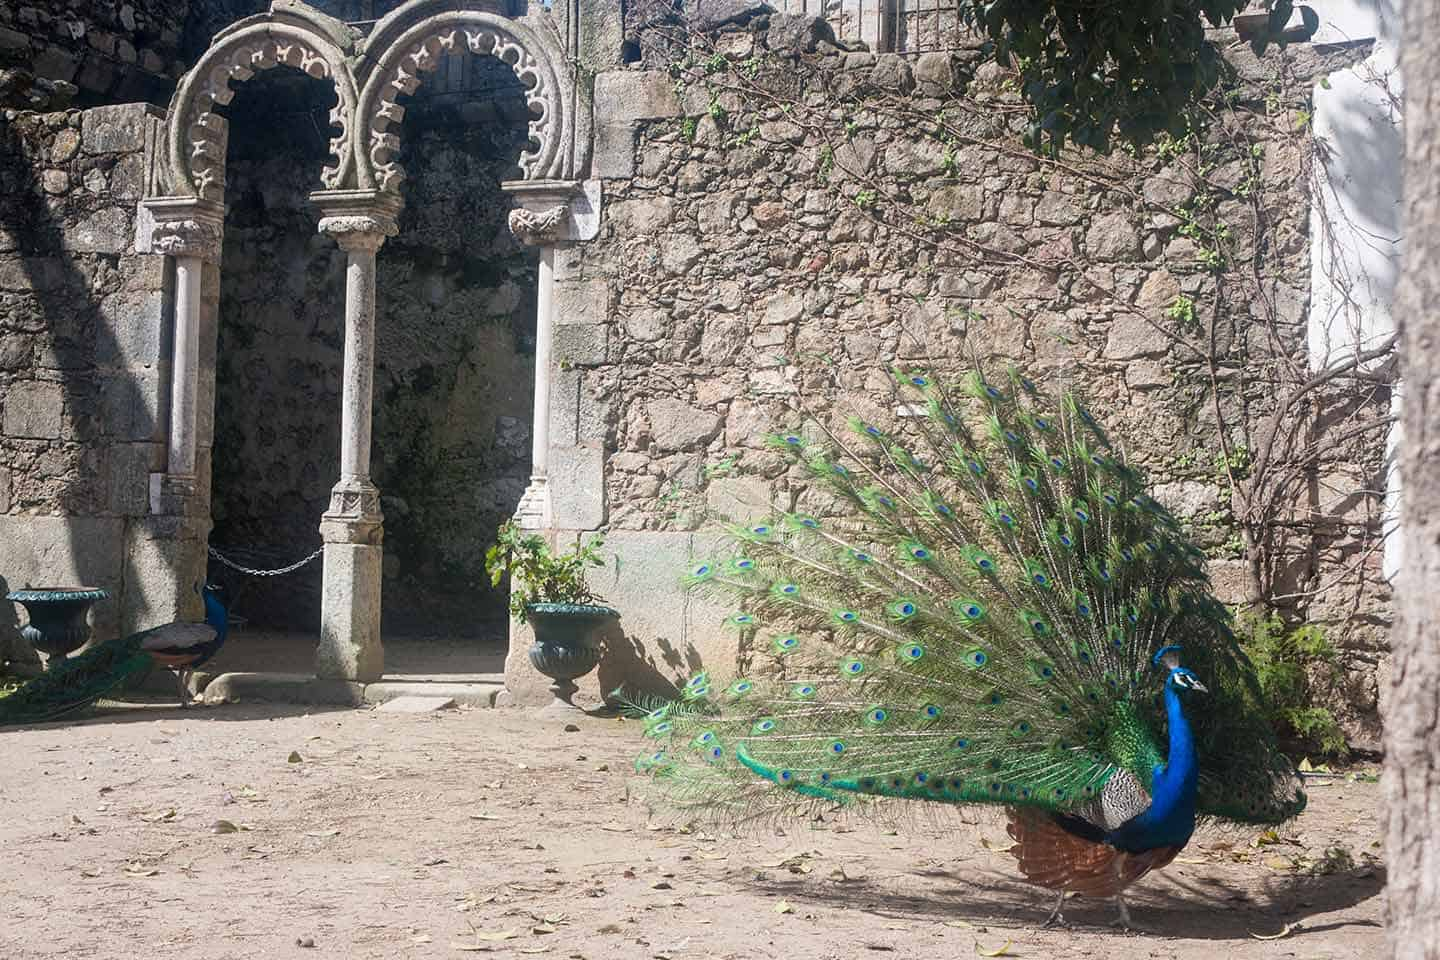 Image of a peacock in the Jardim Publico park, Evora